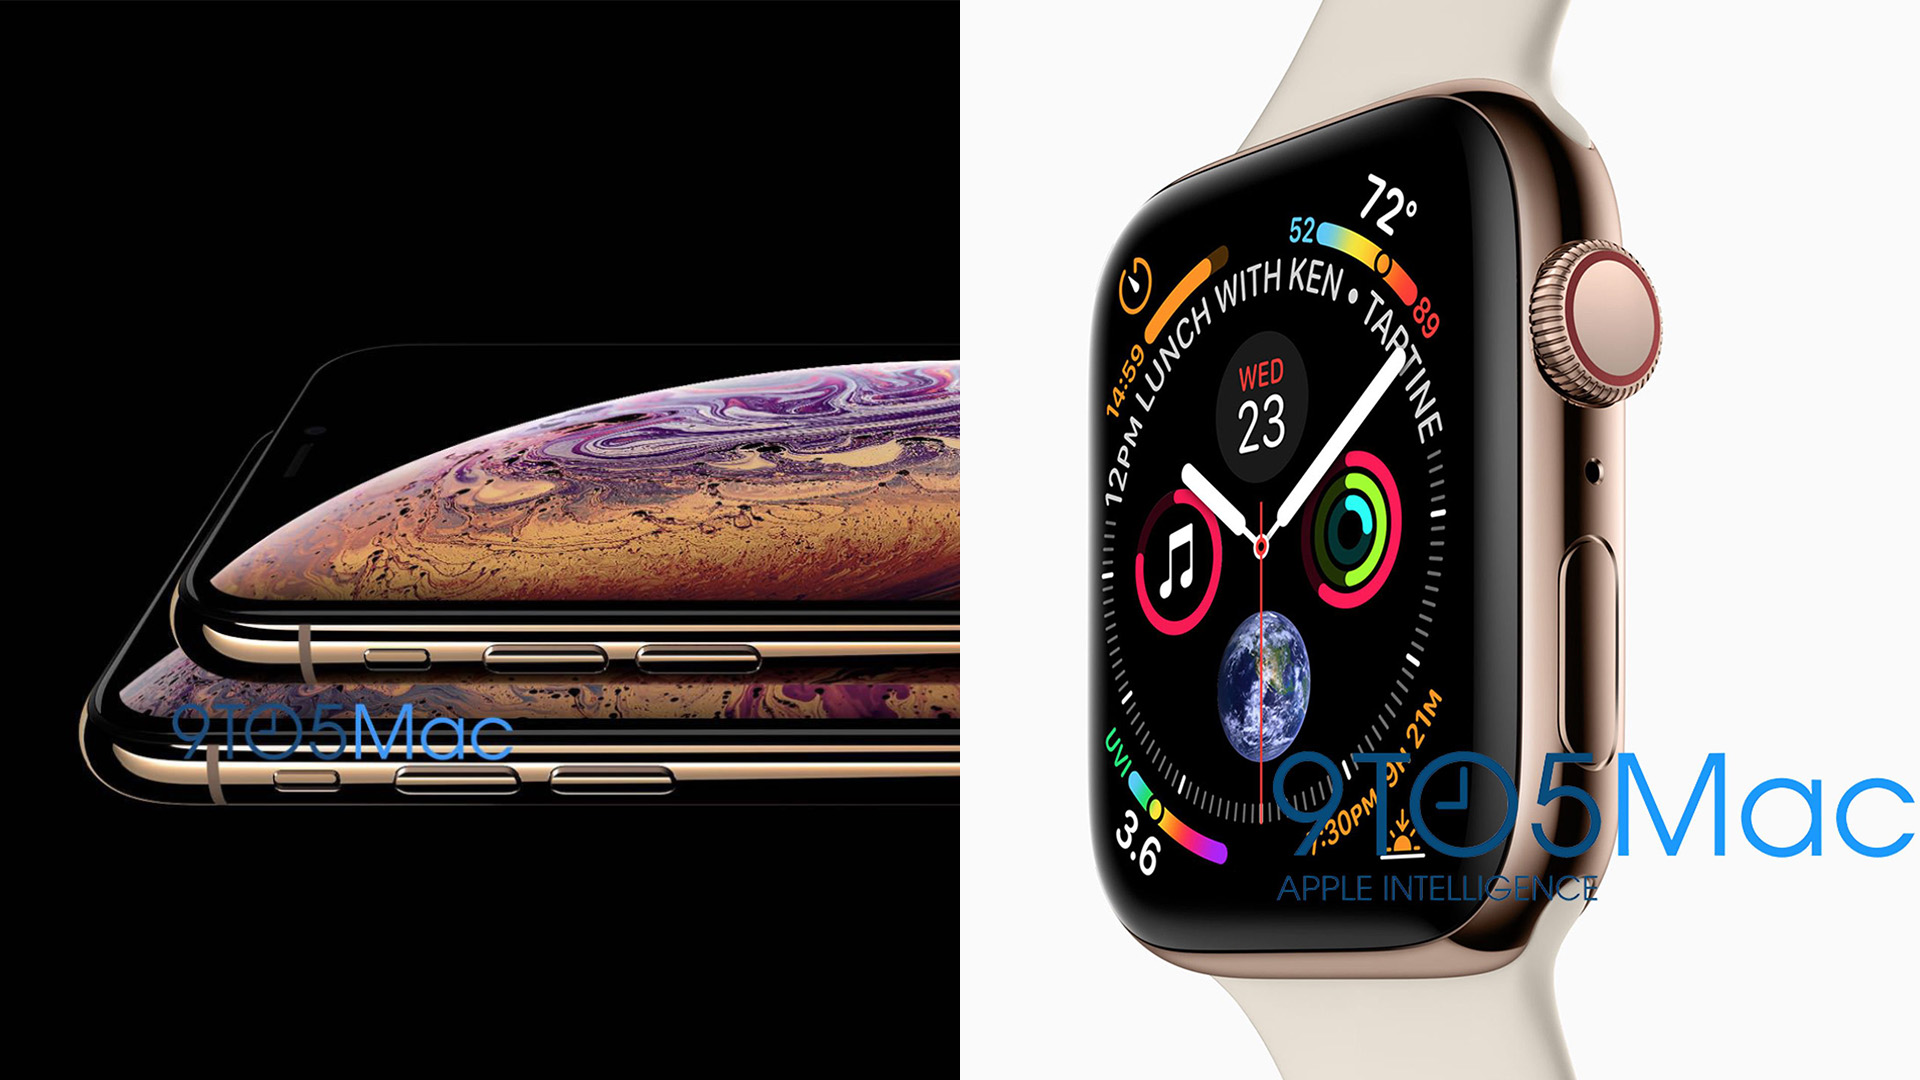 apple event news hub iphone xs xr xs max apple watch series 4 much more